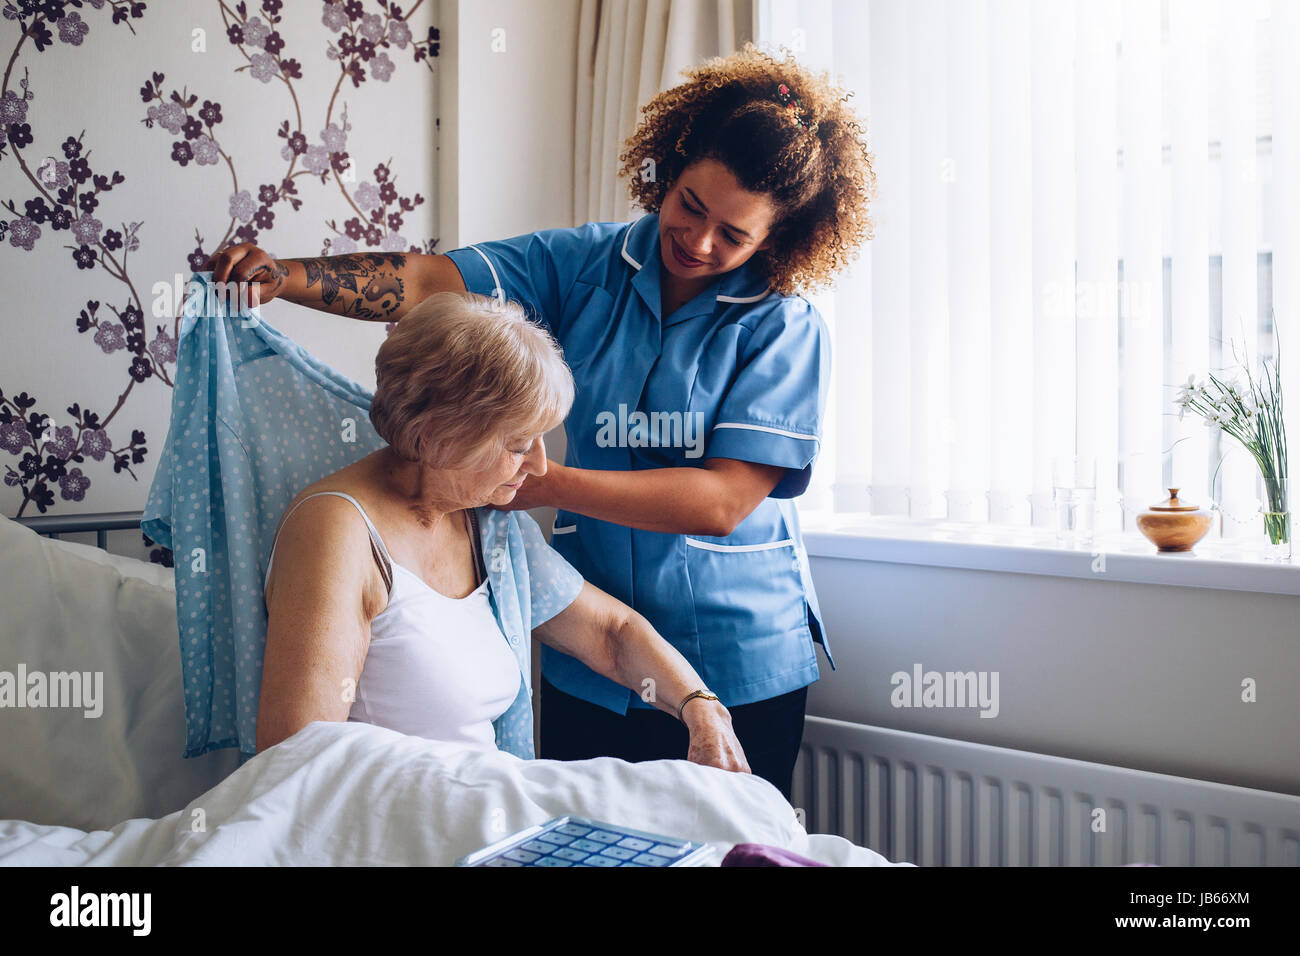 Home Caregiver helping a senior woman get dressed in her bedroom. - Stock Image